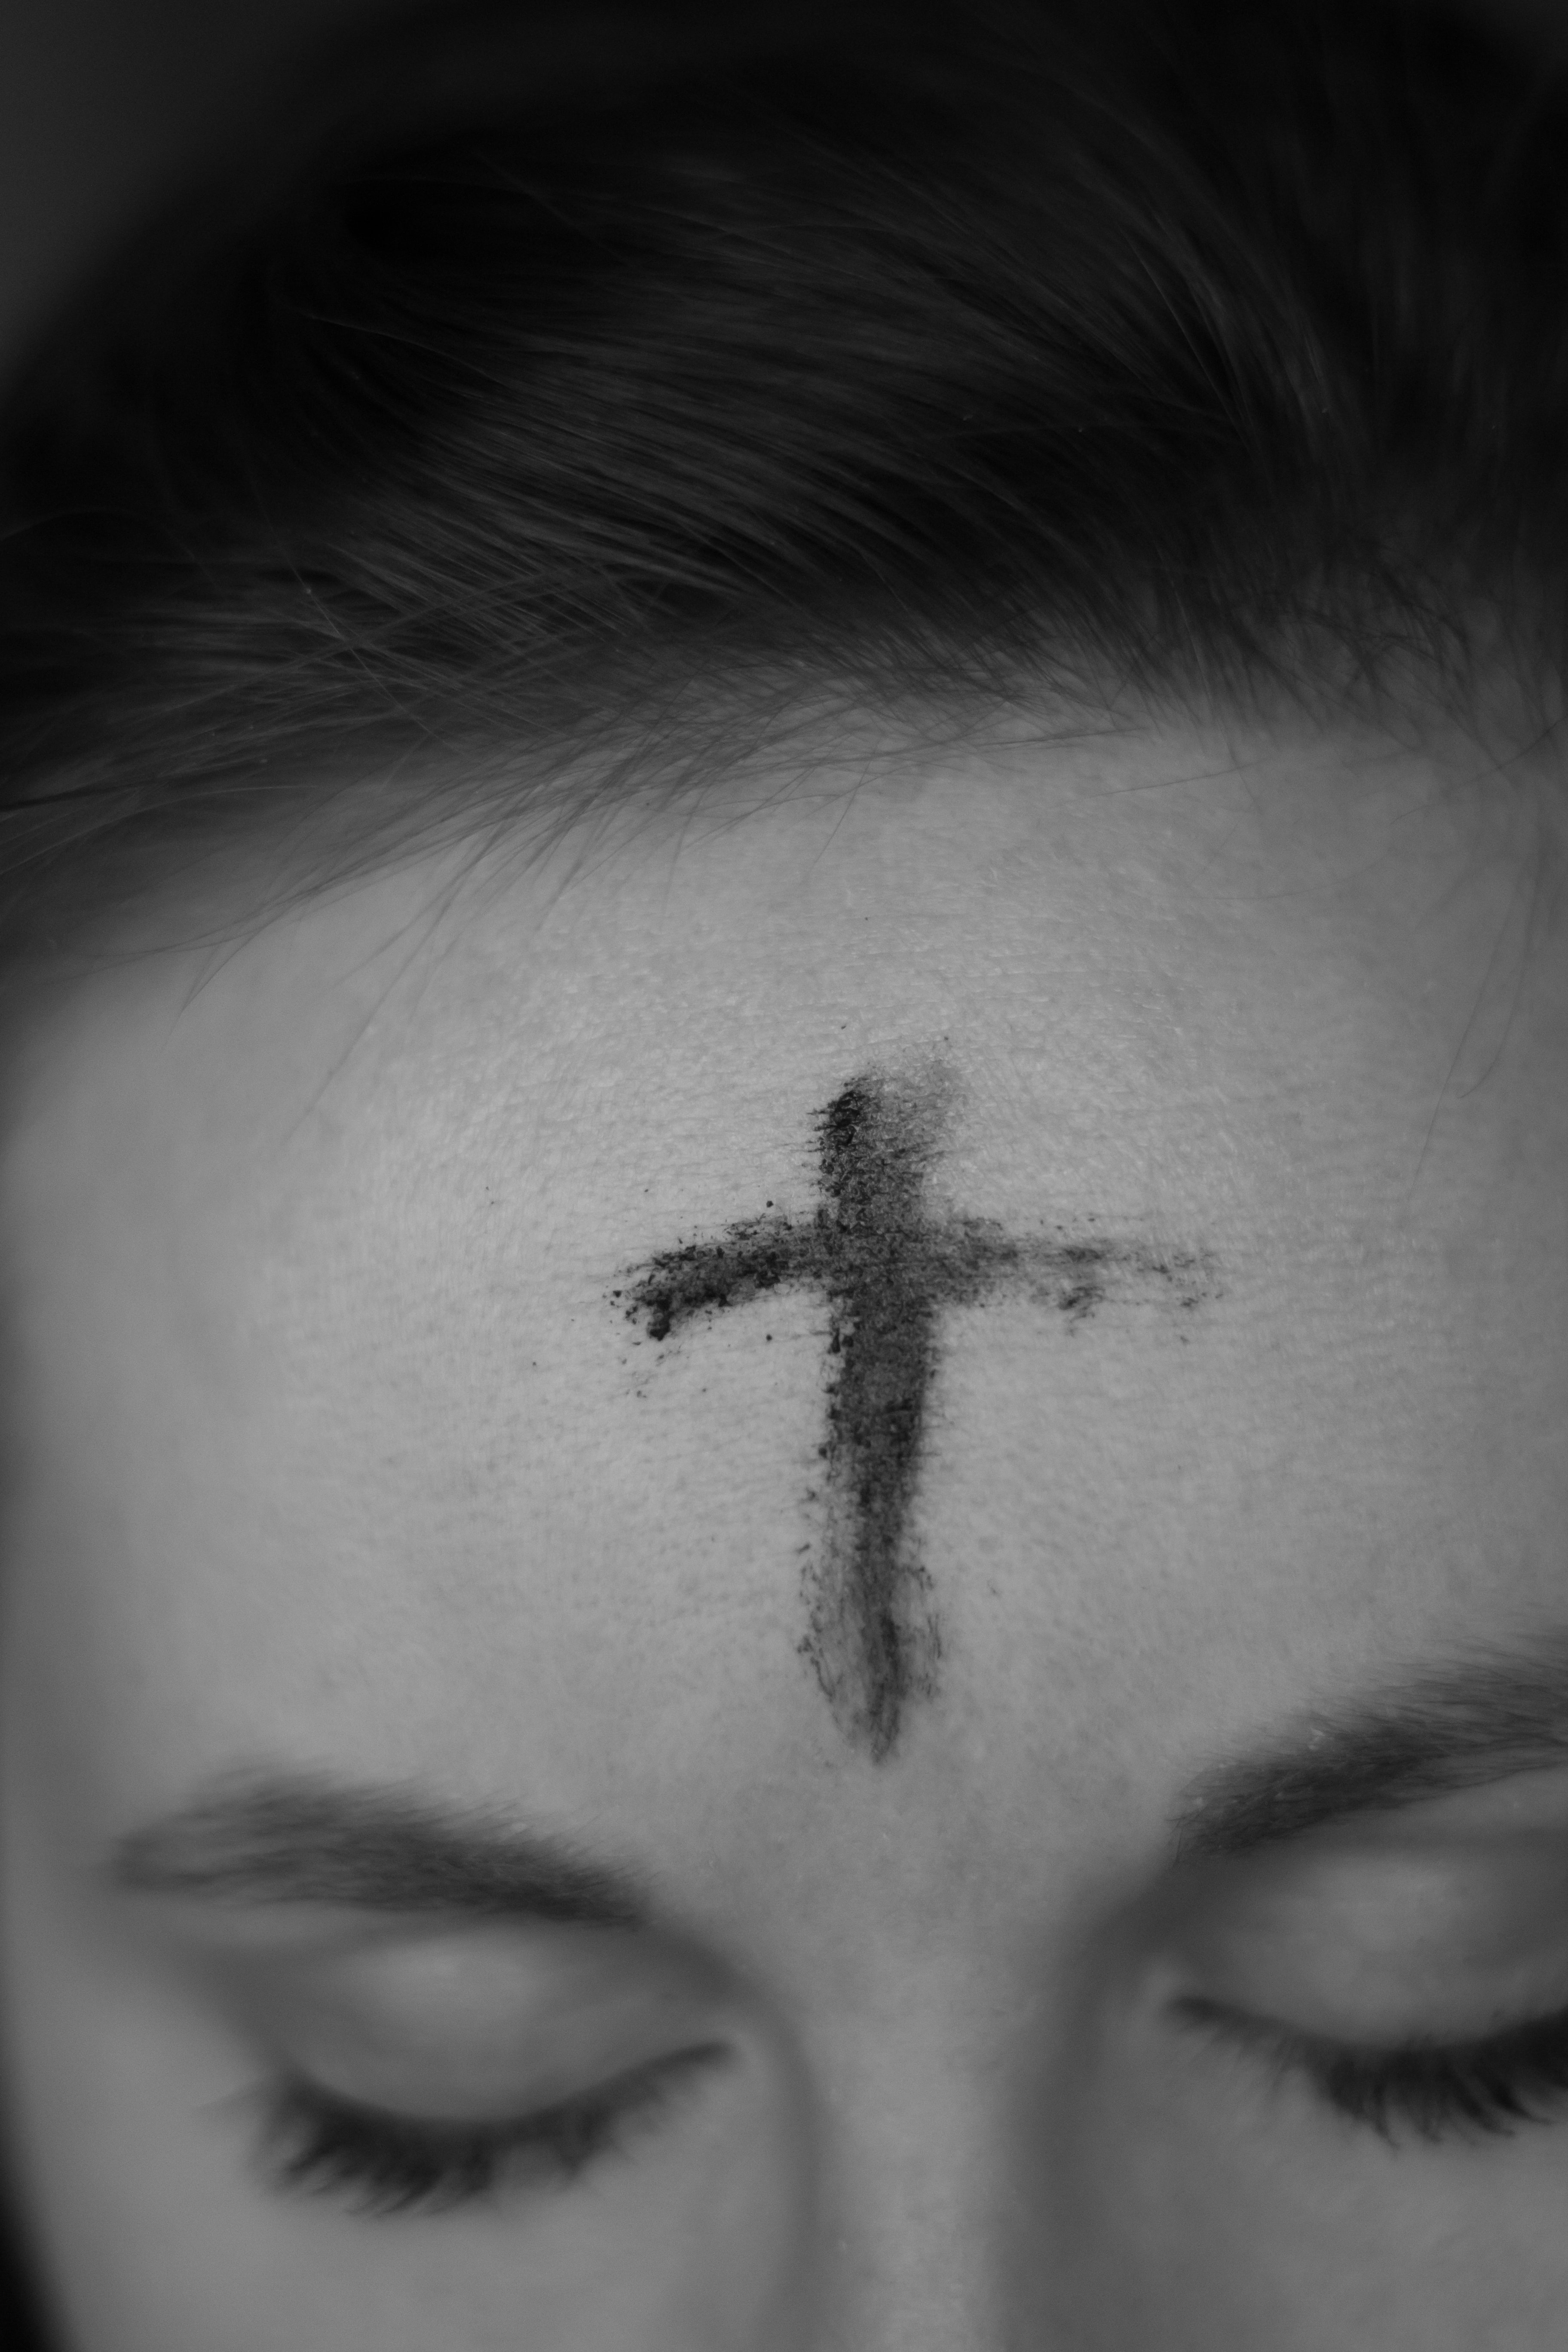 cross on person's forehead